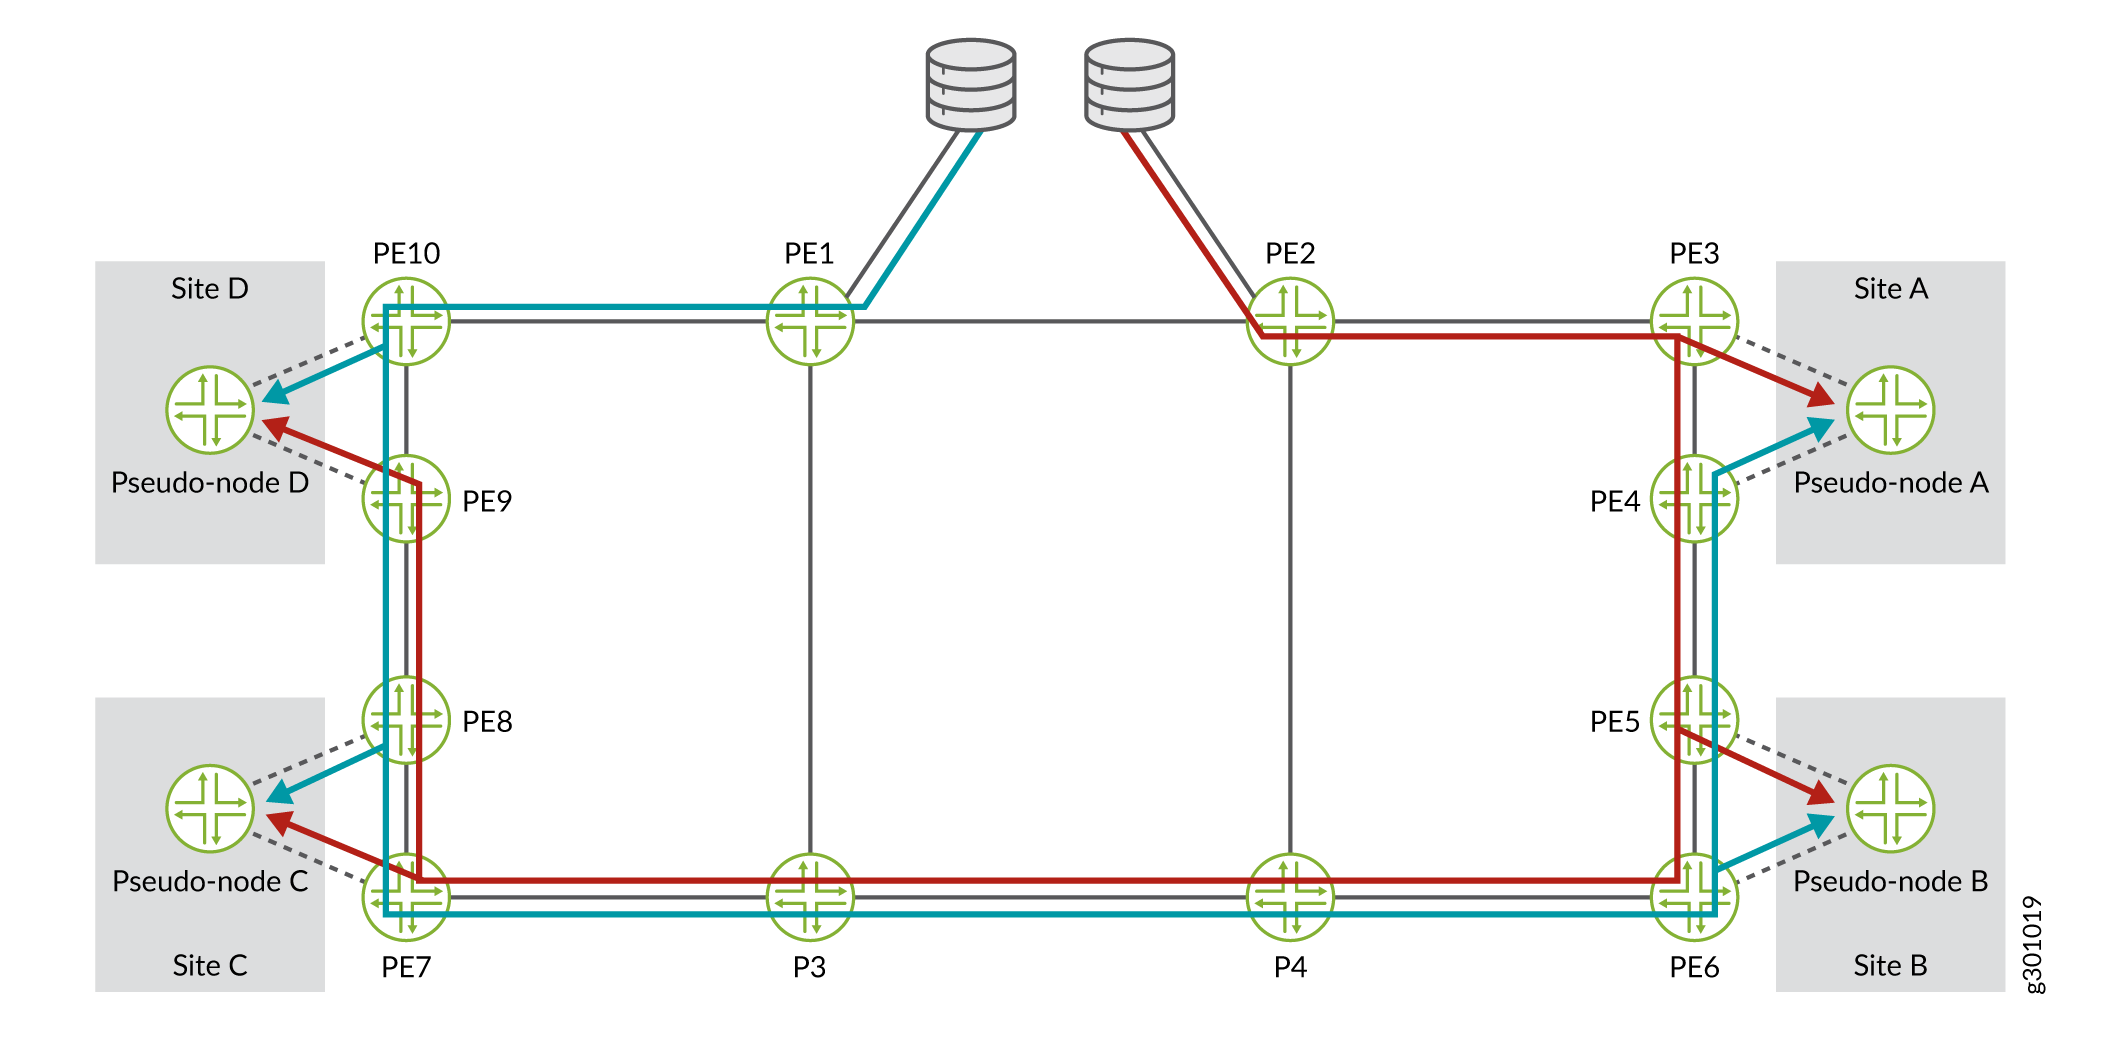 Diverse PE to CE Links Topology with Redundant Data Streams